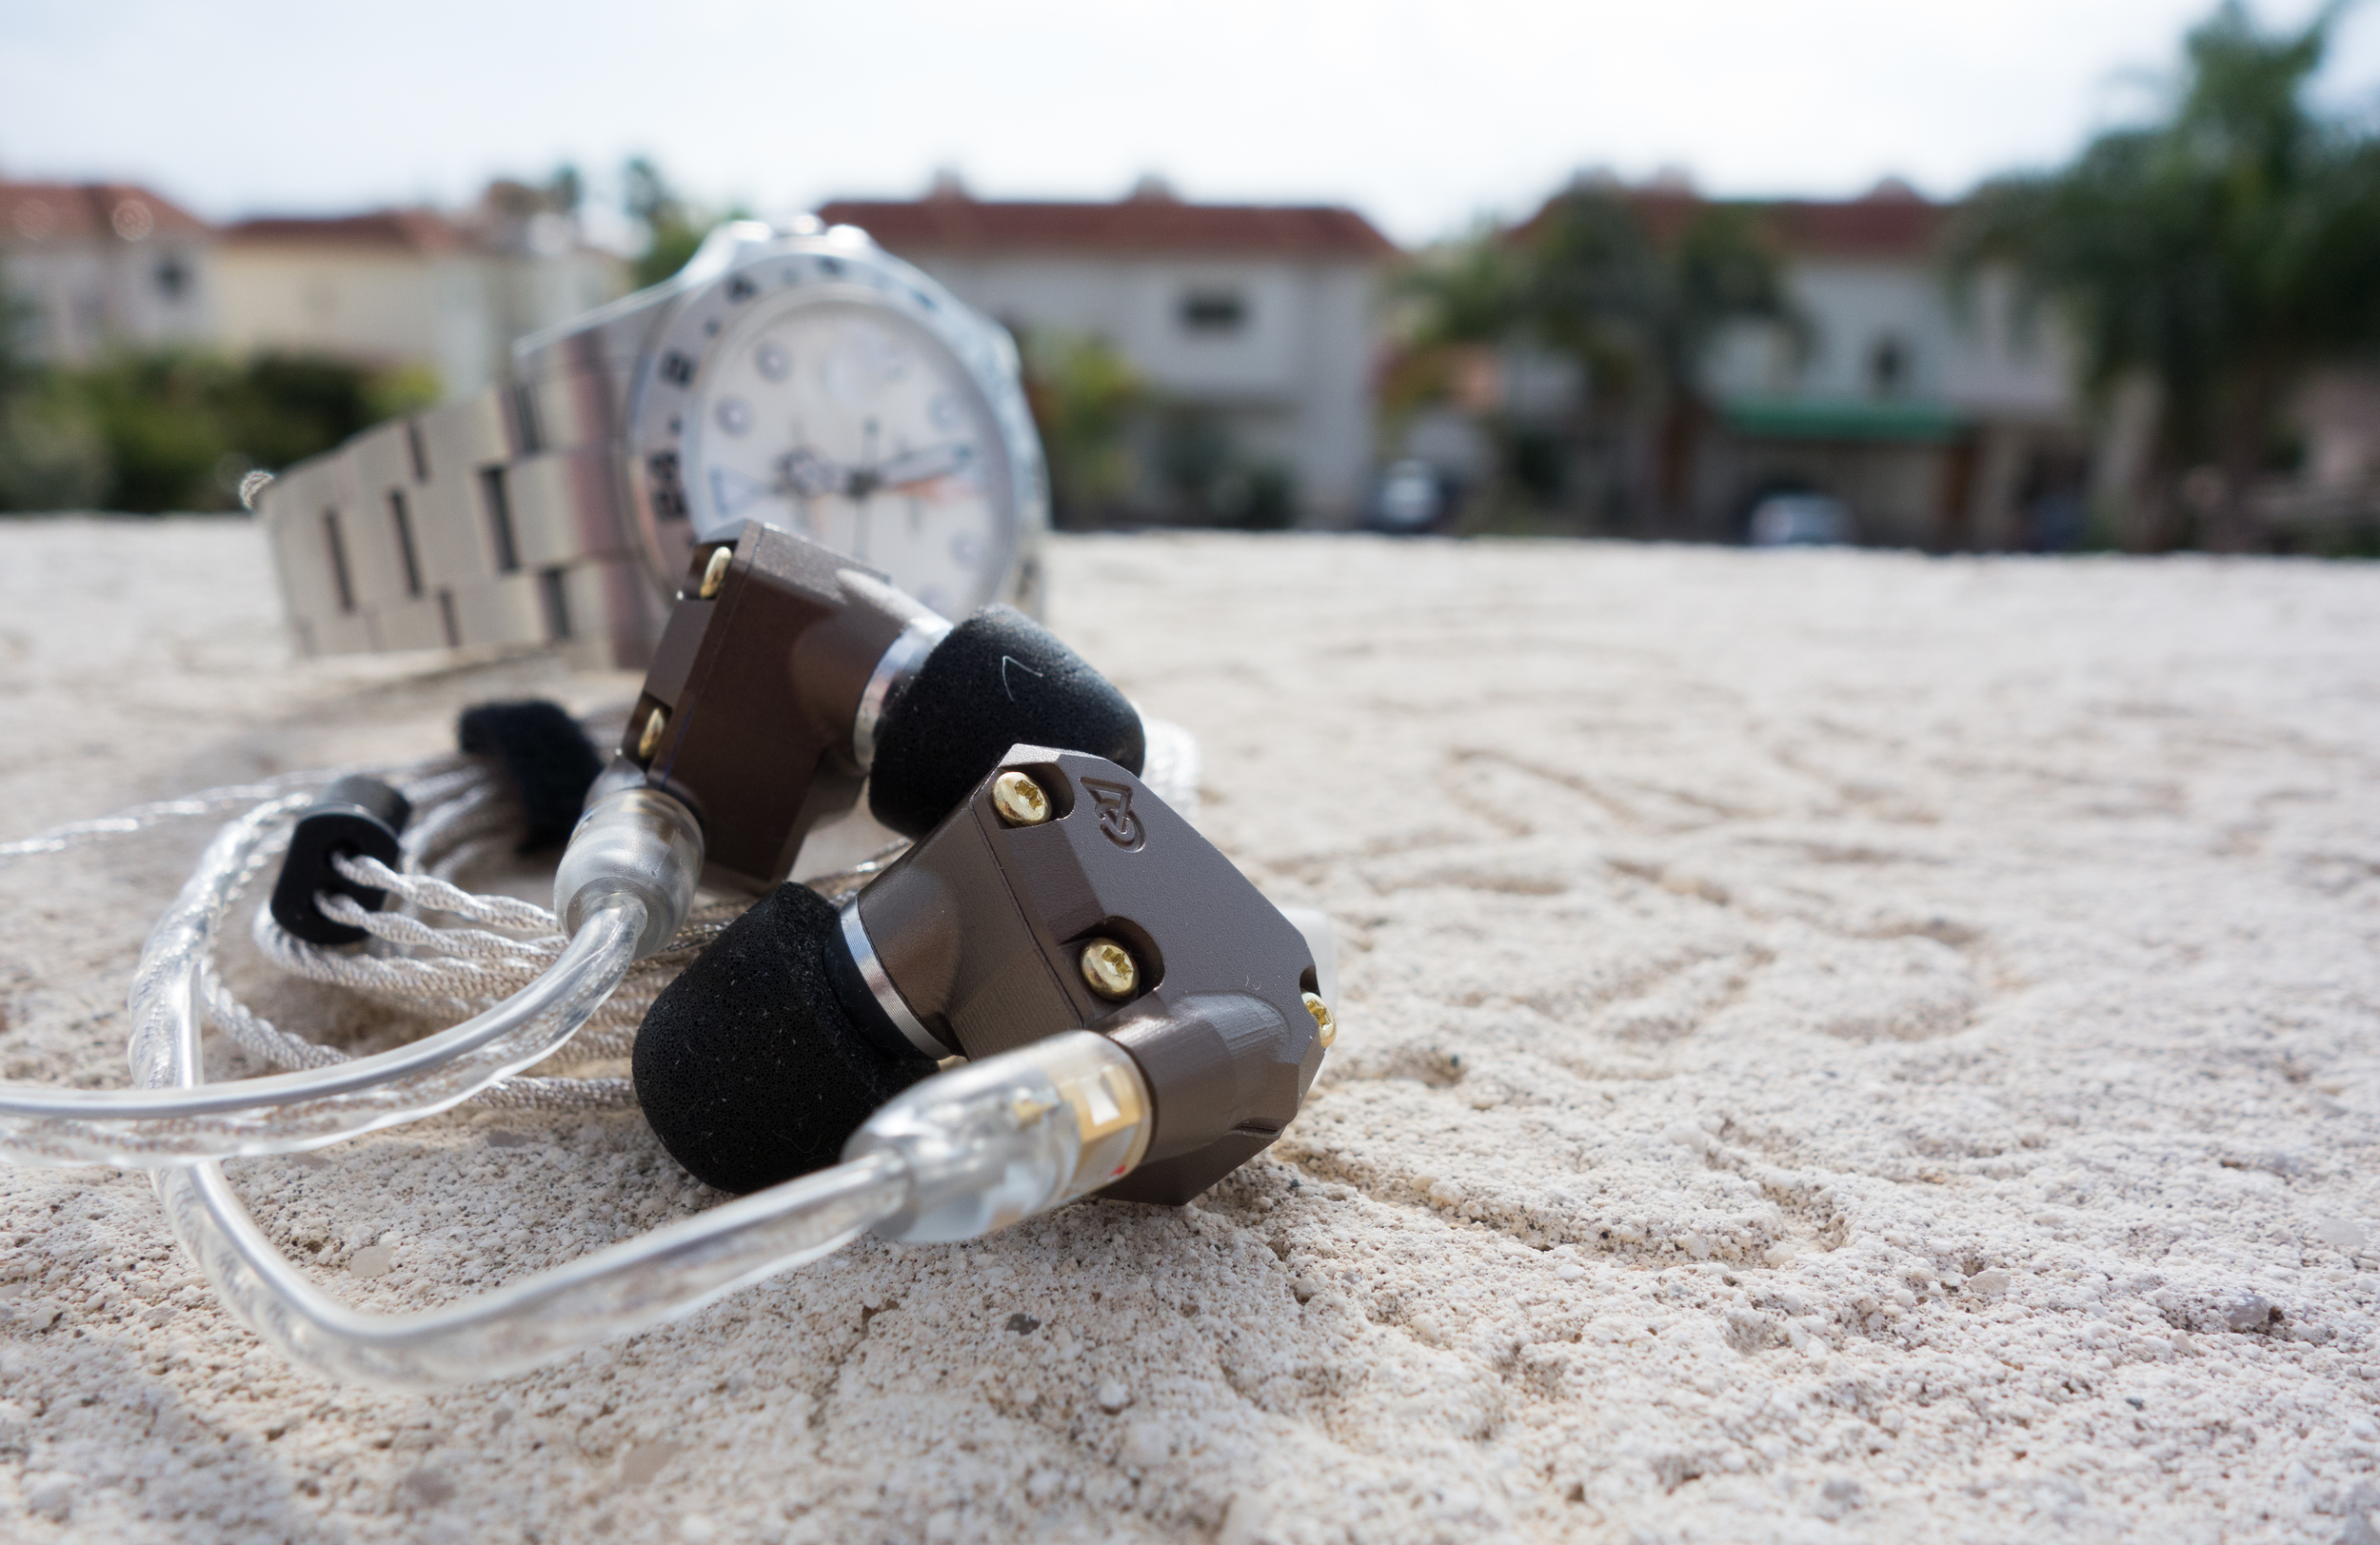 Sun in December. Relaxing listening sessions on the balcony with the Campfire Audio Jupiter IEM.